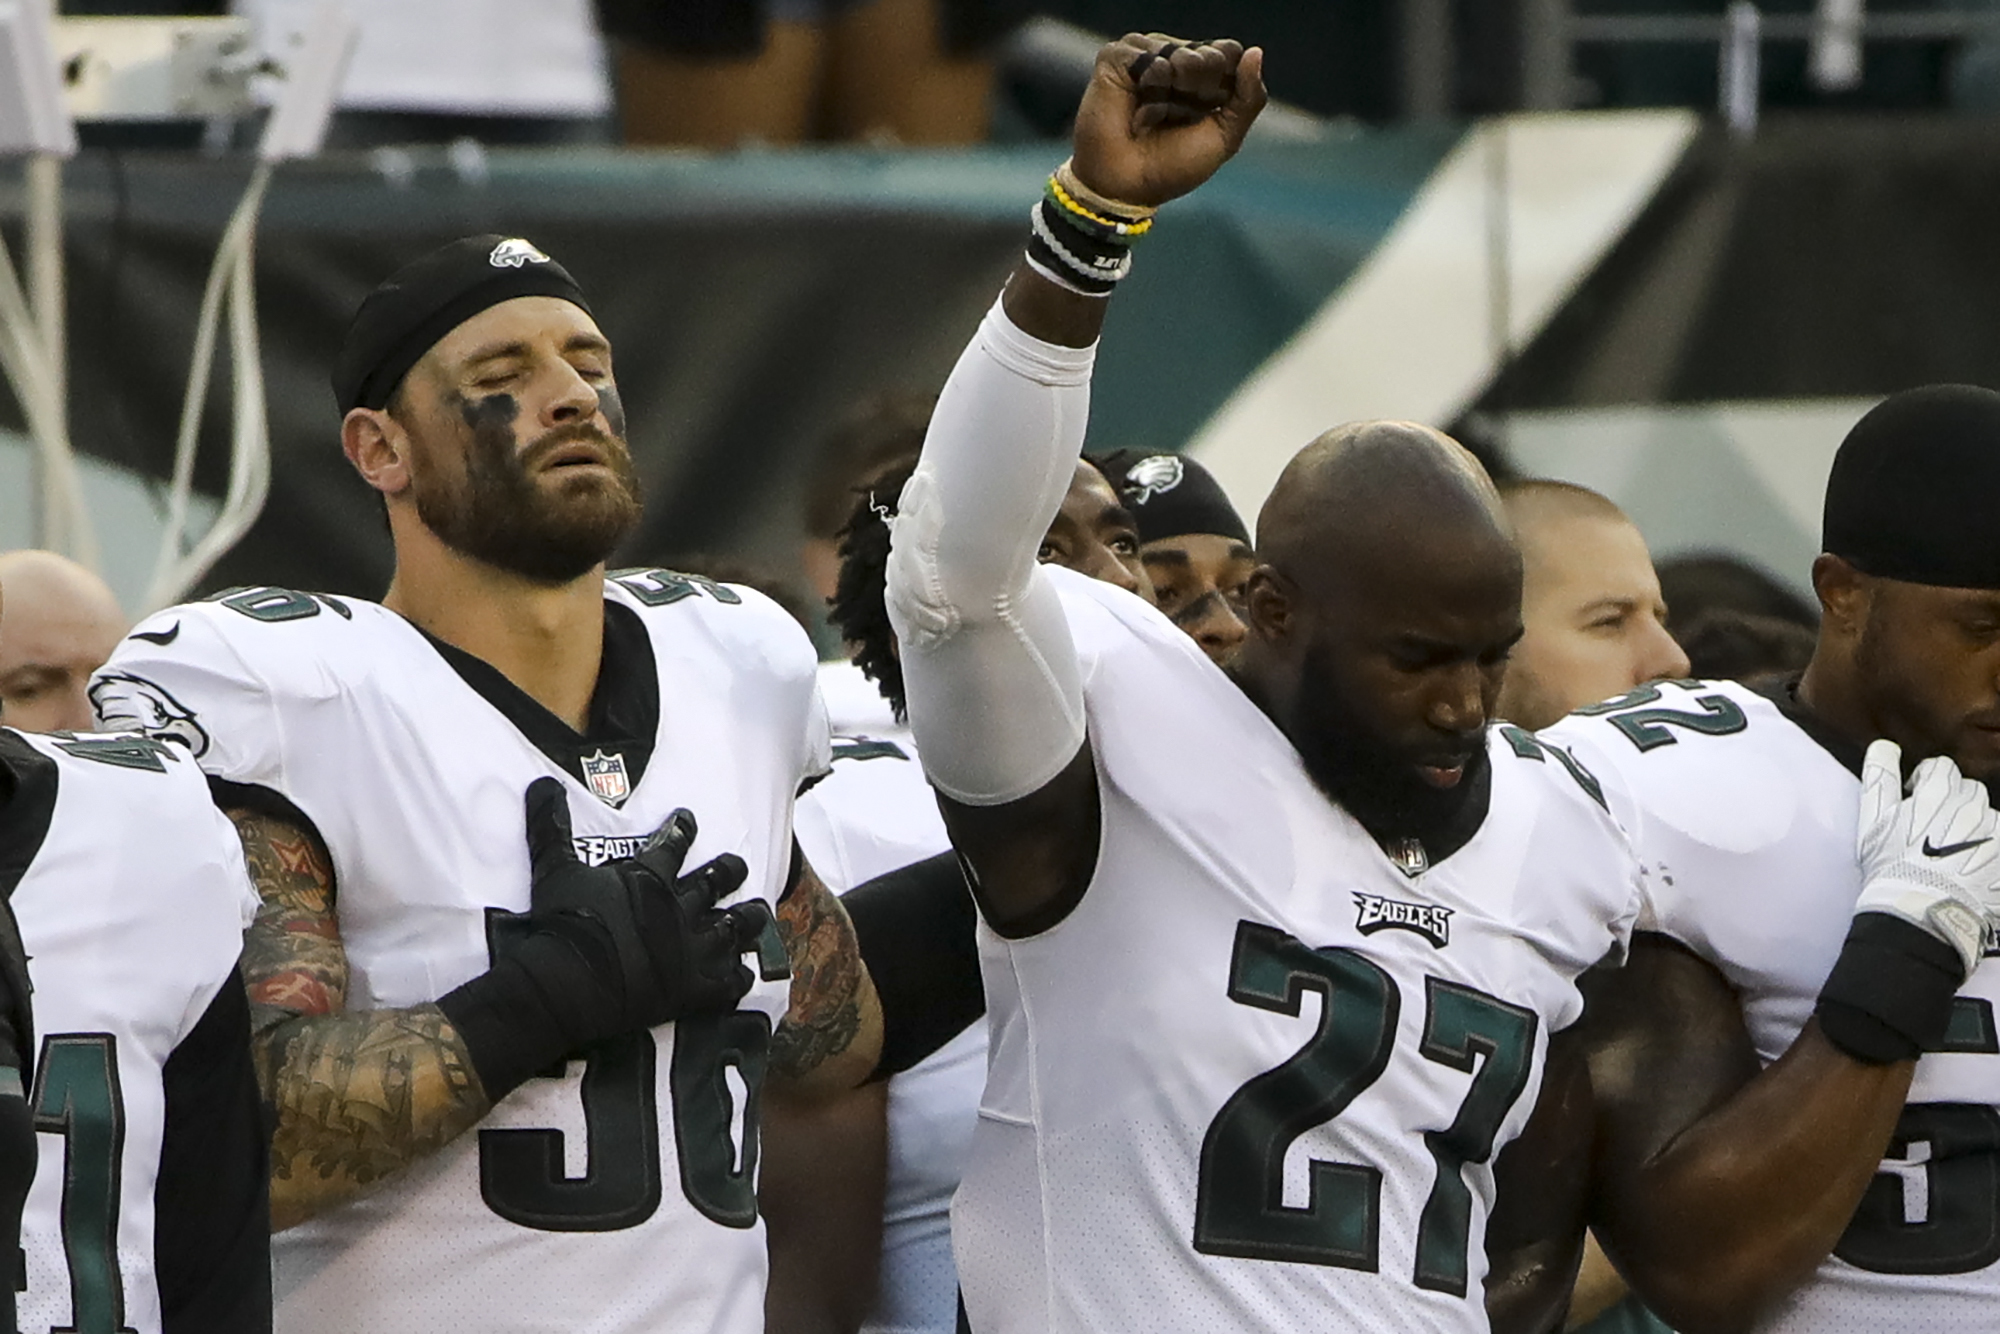 Philadelphia Eagles' Chris Long (56) stands beside Malcolm Jenkins (27) as he raises his fist during the national anthem before a preseason game. (AP)